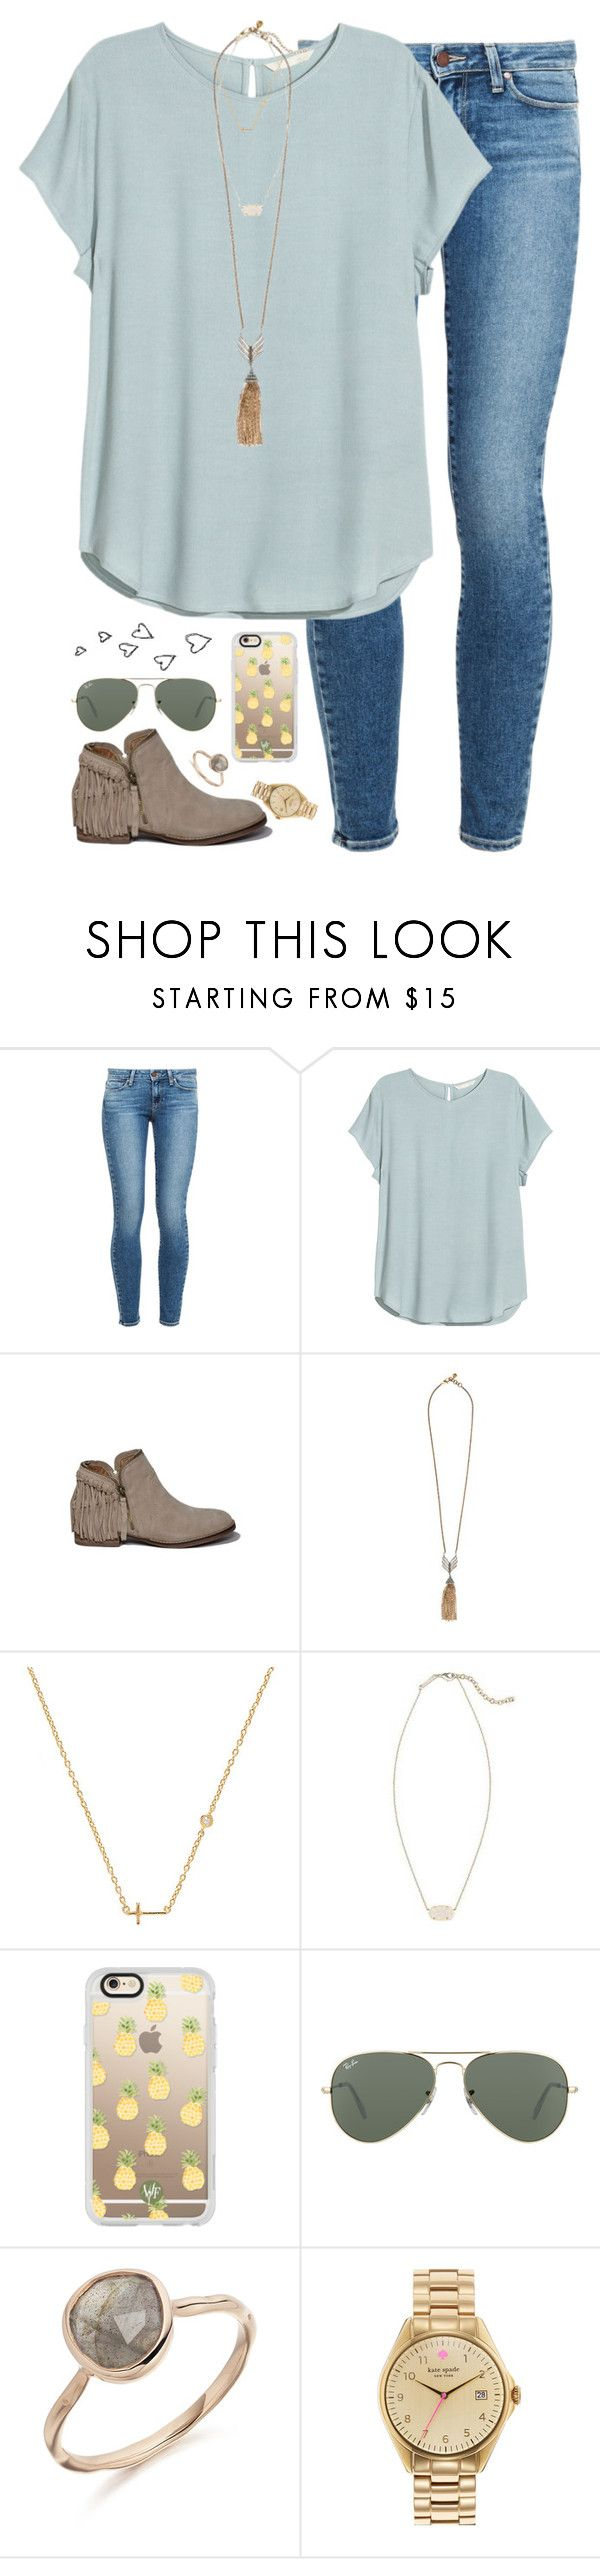 """""""when you realize your bf has the same basketball number as Michael Jordan"""" by kaley-ii ❤ liked on Polyvore featuring Paige Denim, Abercrombie & Fitch, Lulu Frost, Sydney Evan, Kendra Scott, Casetify, Ray-Ban and Kate Spade"""